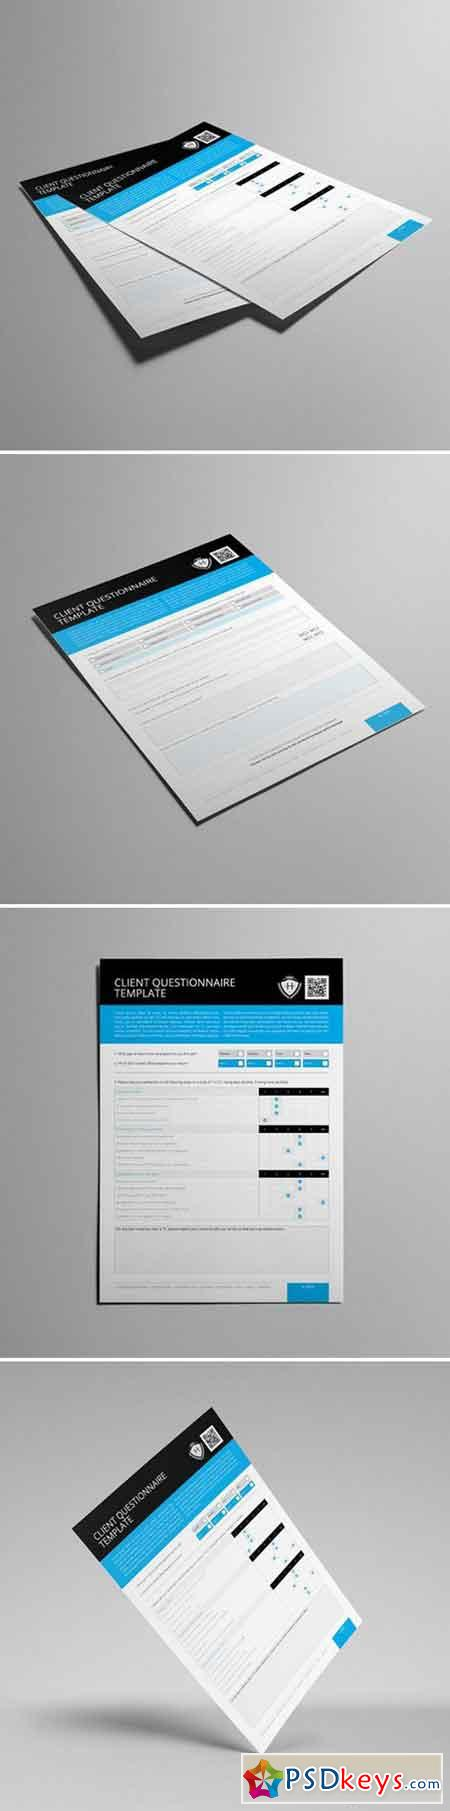 client questionnaire template - Ideal.vistalist.co